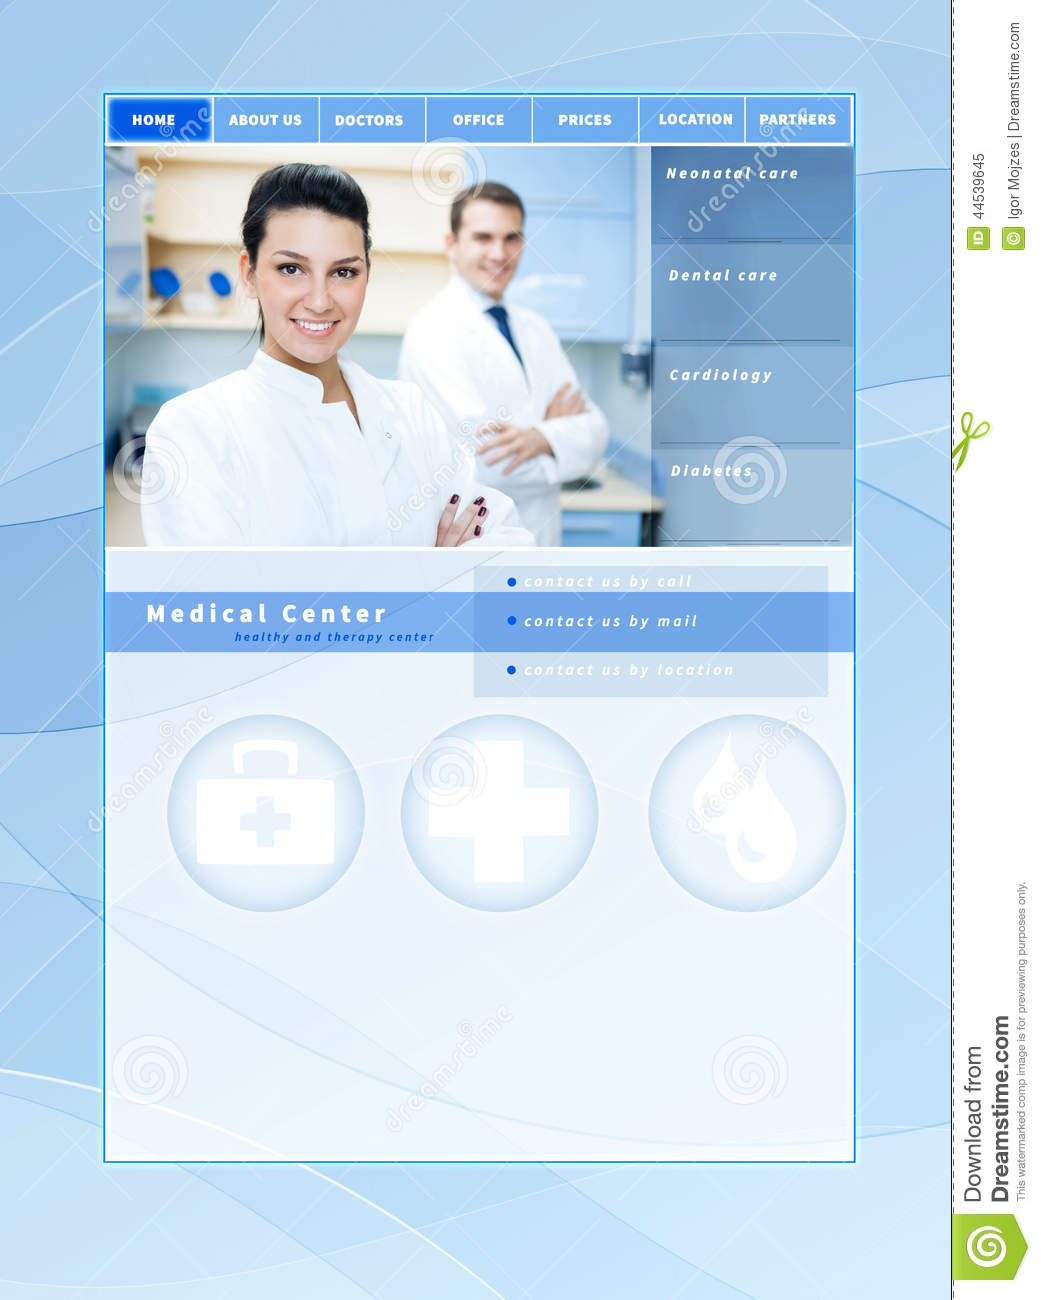 Medical website template stock image. Image of business - 44539645